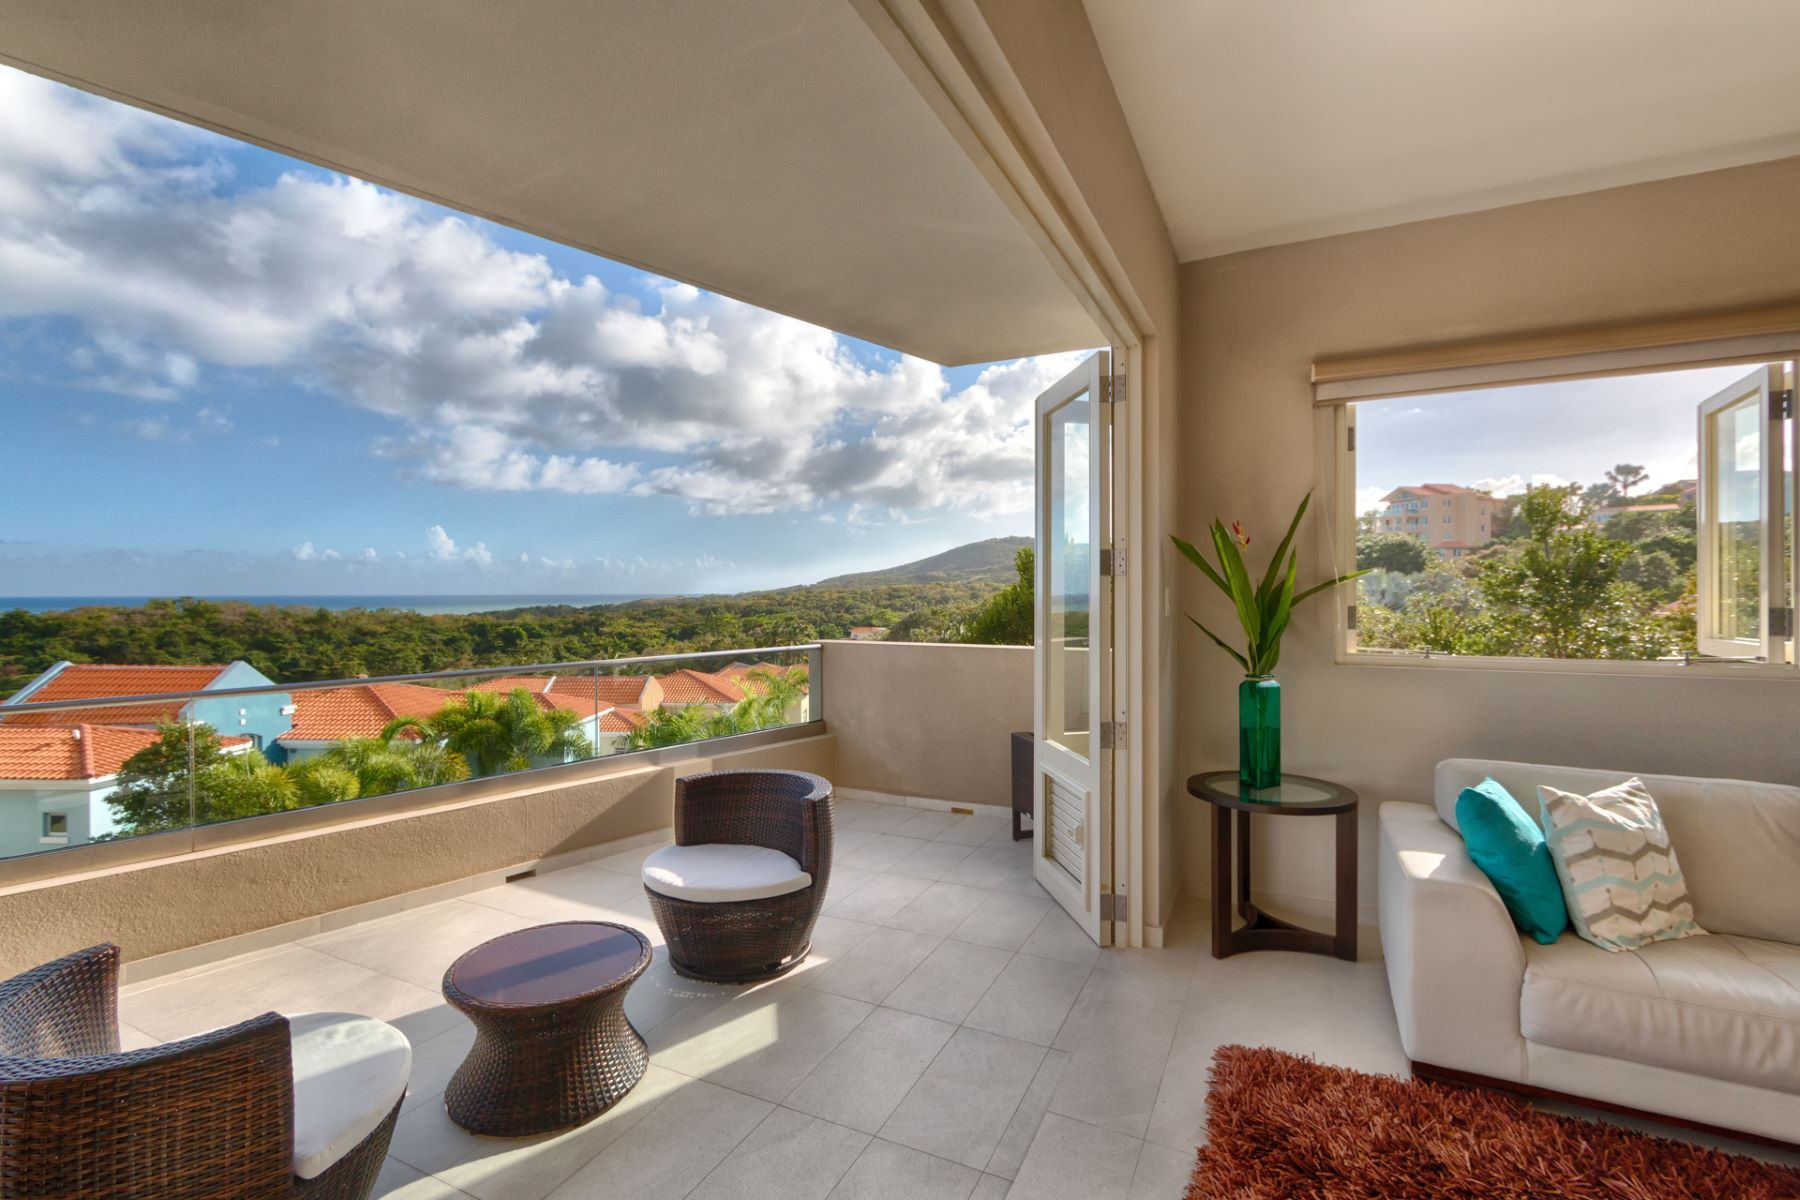 Additional photo for property listing at Ocean View Contemporary at Shell Castle Club 86 Shell Castle Club Palmas Del Mar, Puerto Rico 00791 푸에르토리코